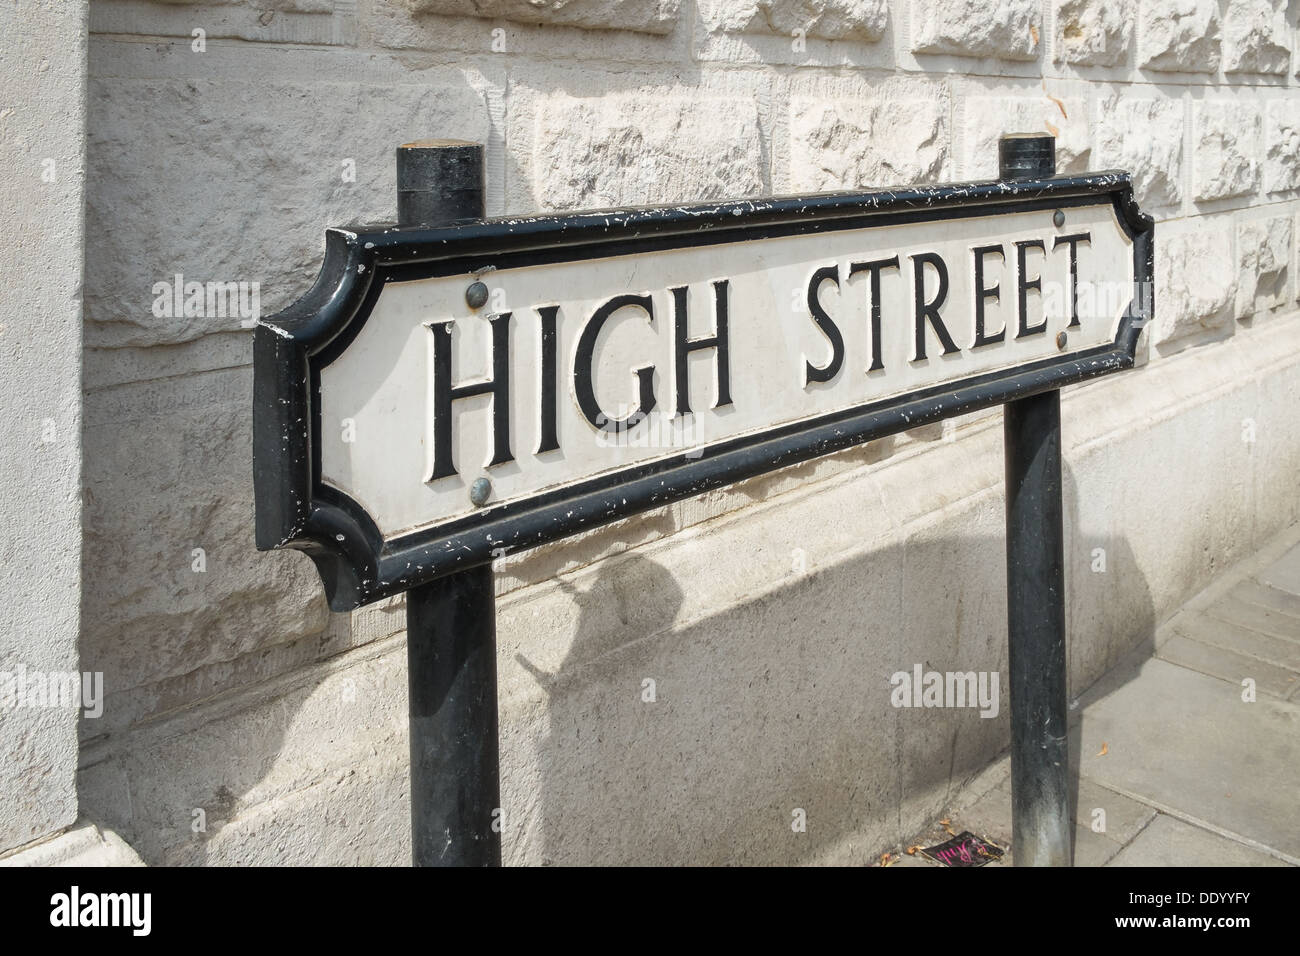 A High Street road sign in front of a white wall - Stock Image